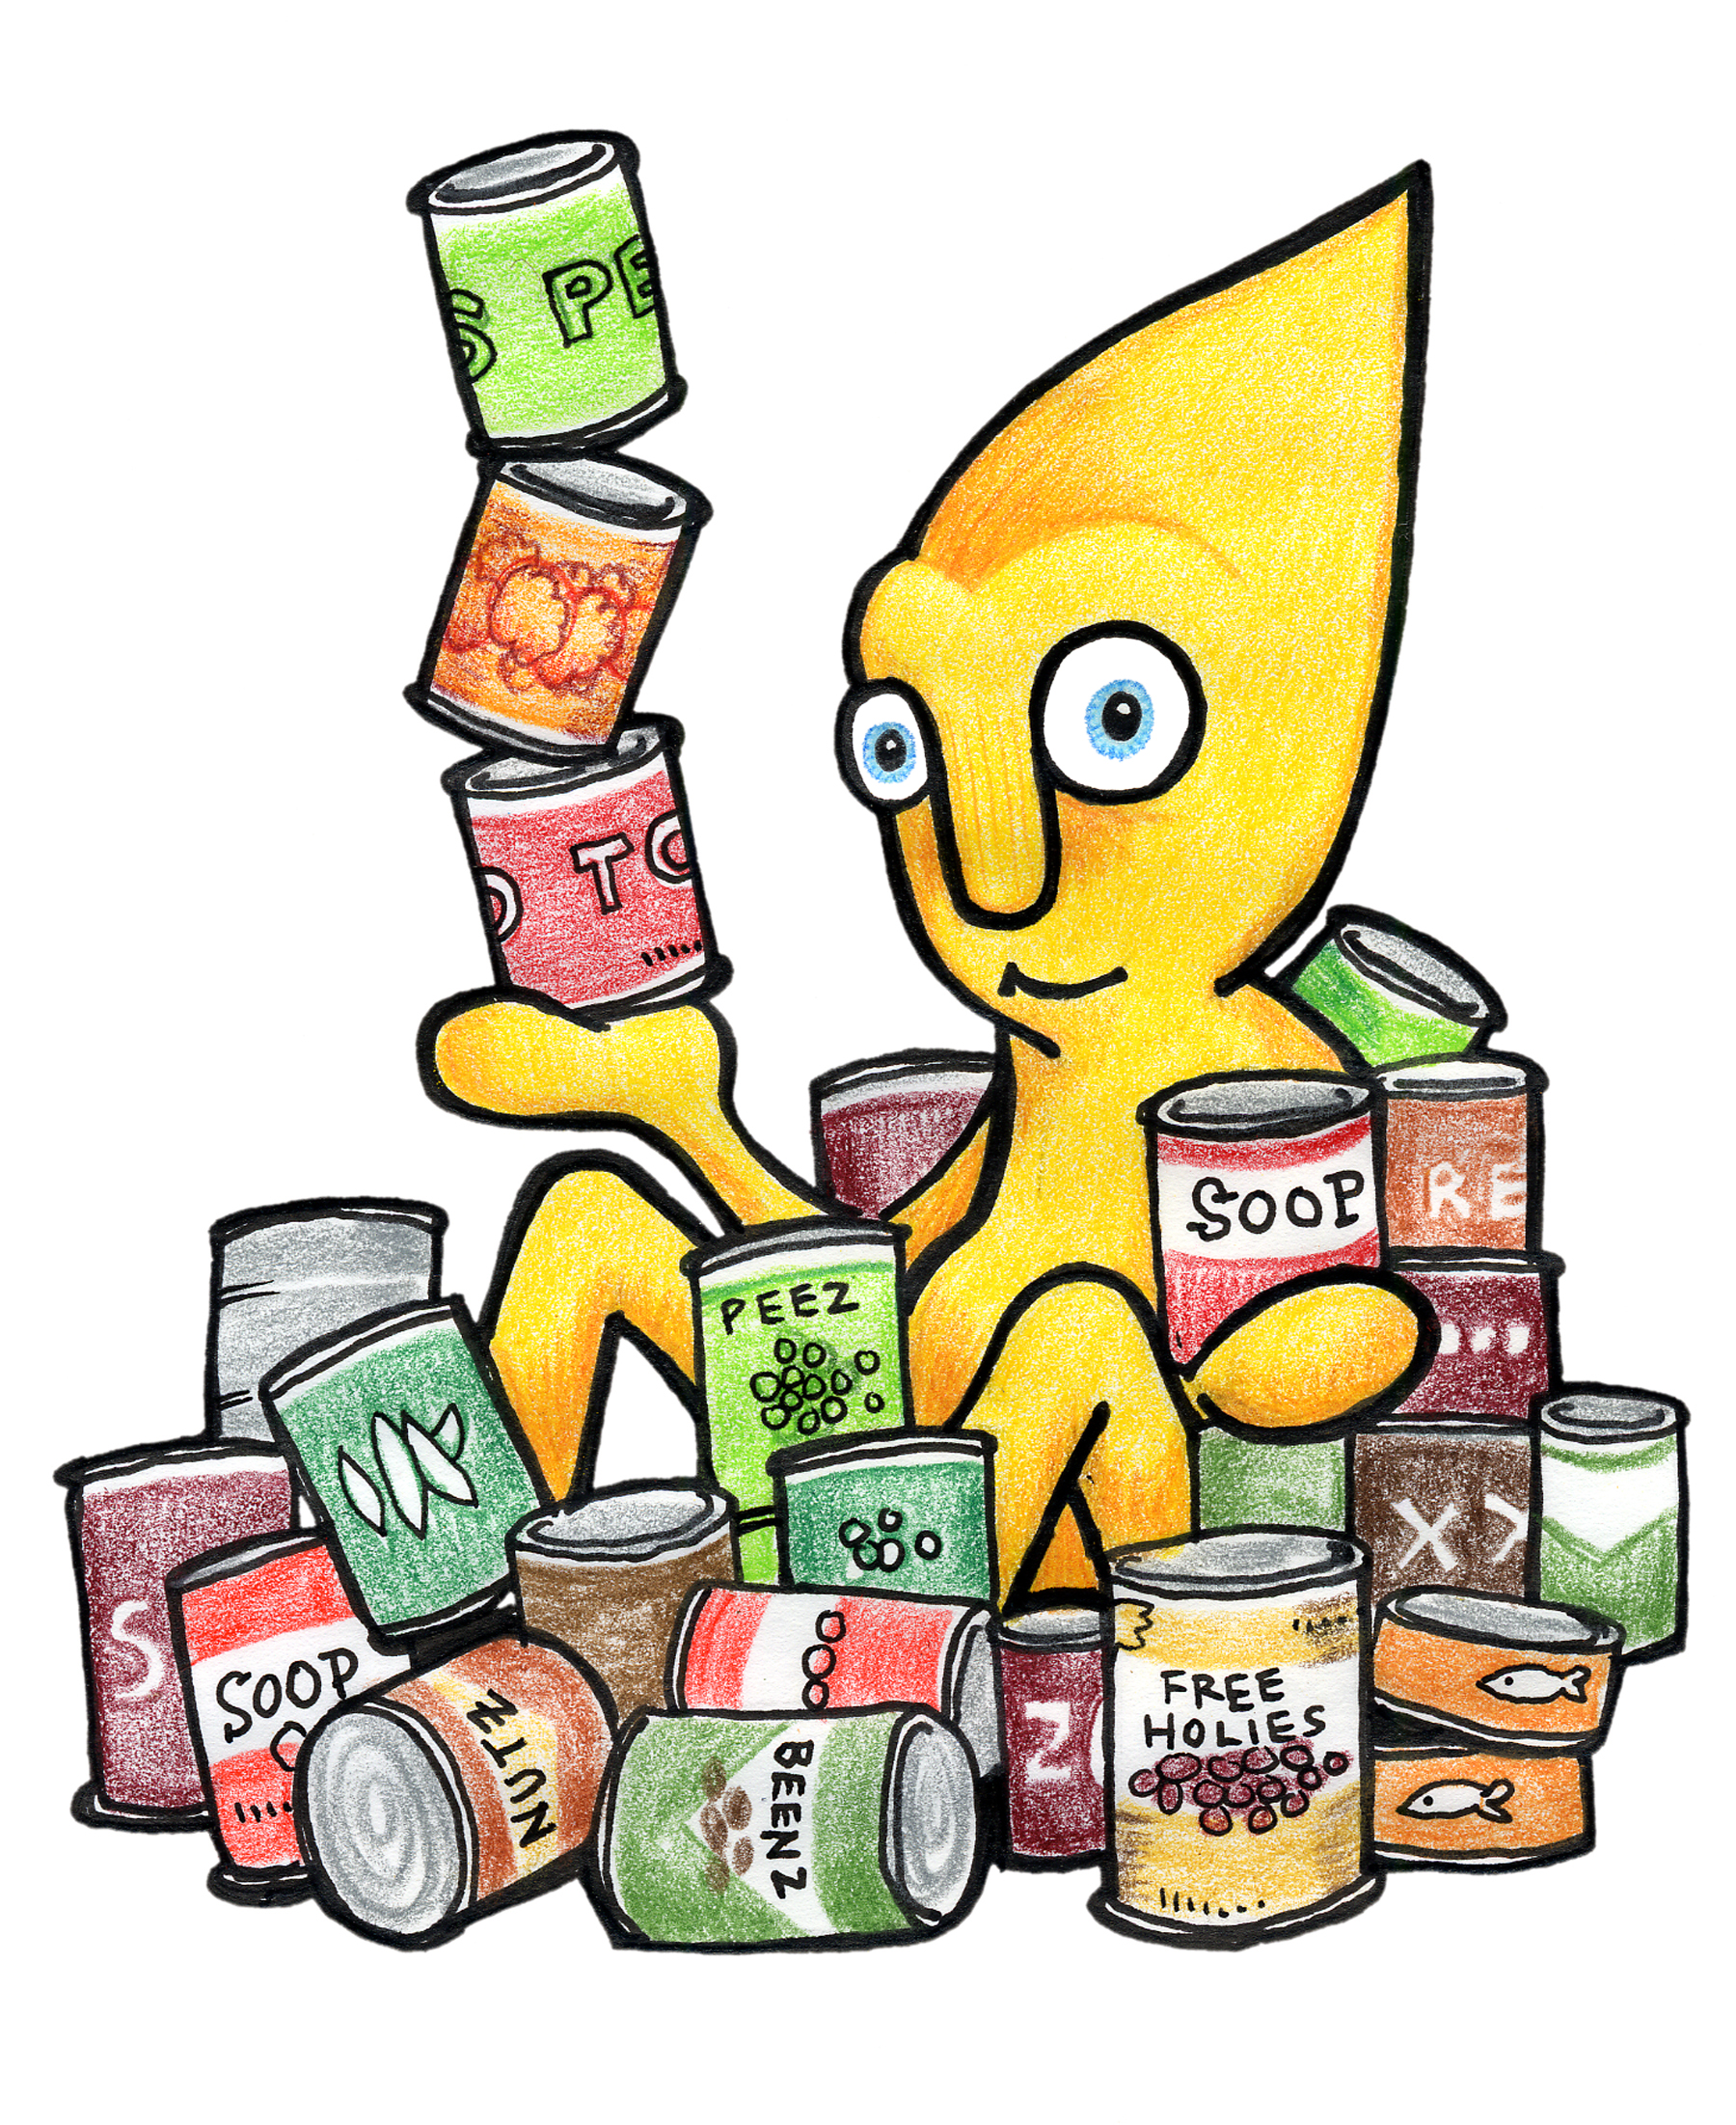 Canned Food Drive Posters - Free Clipart Images